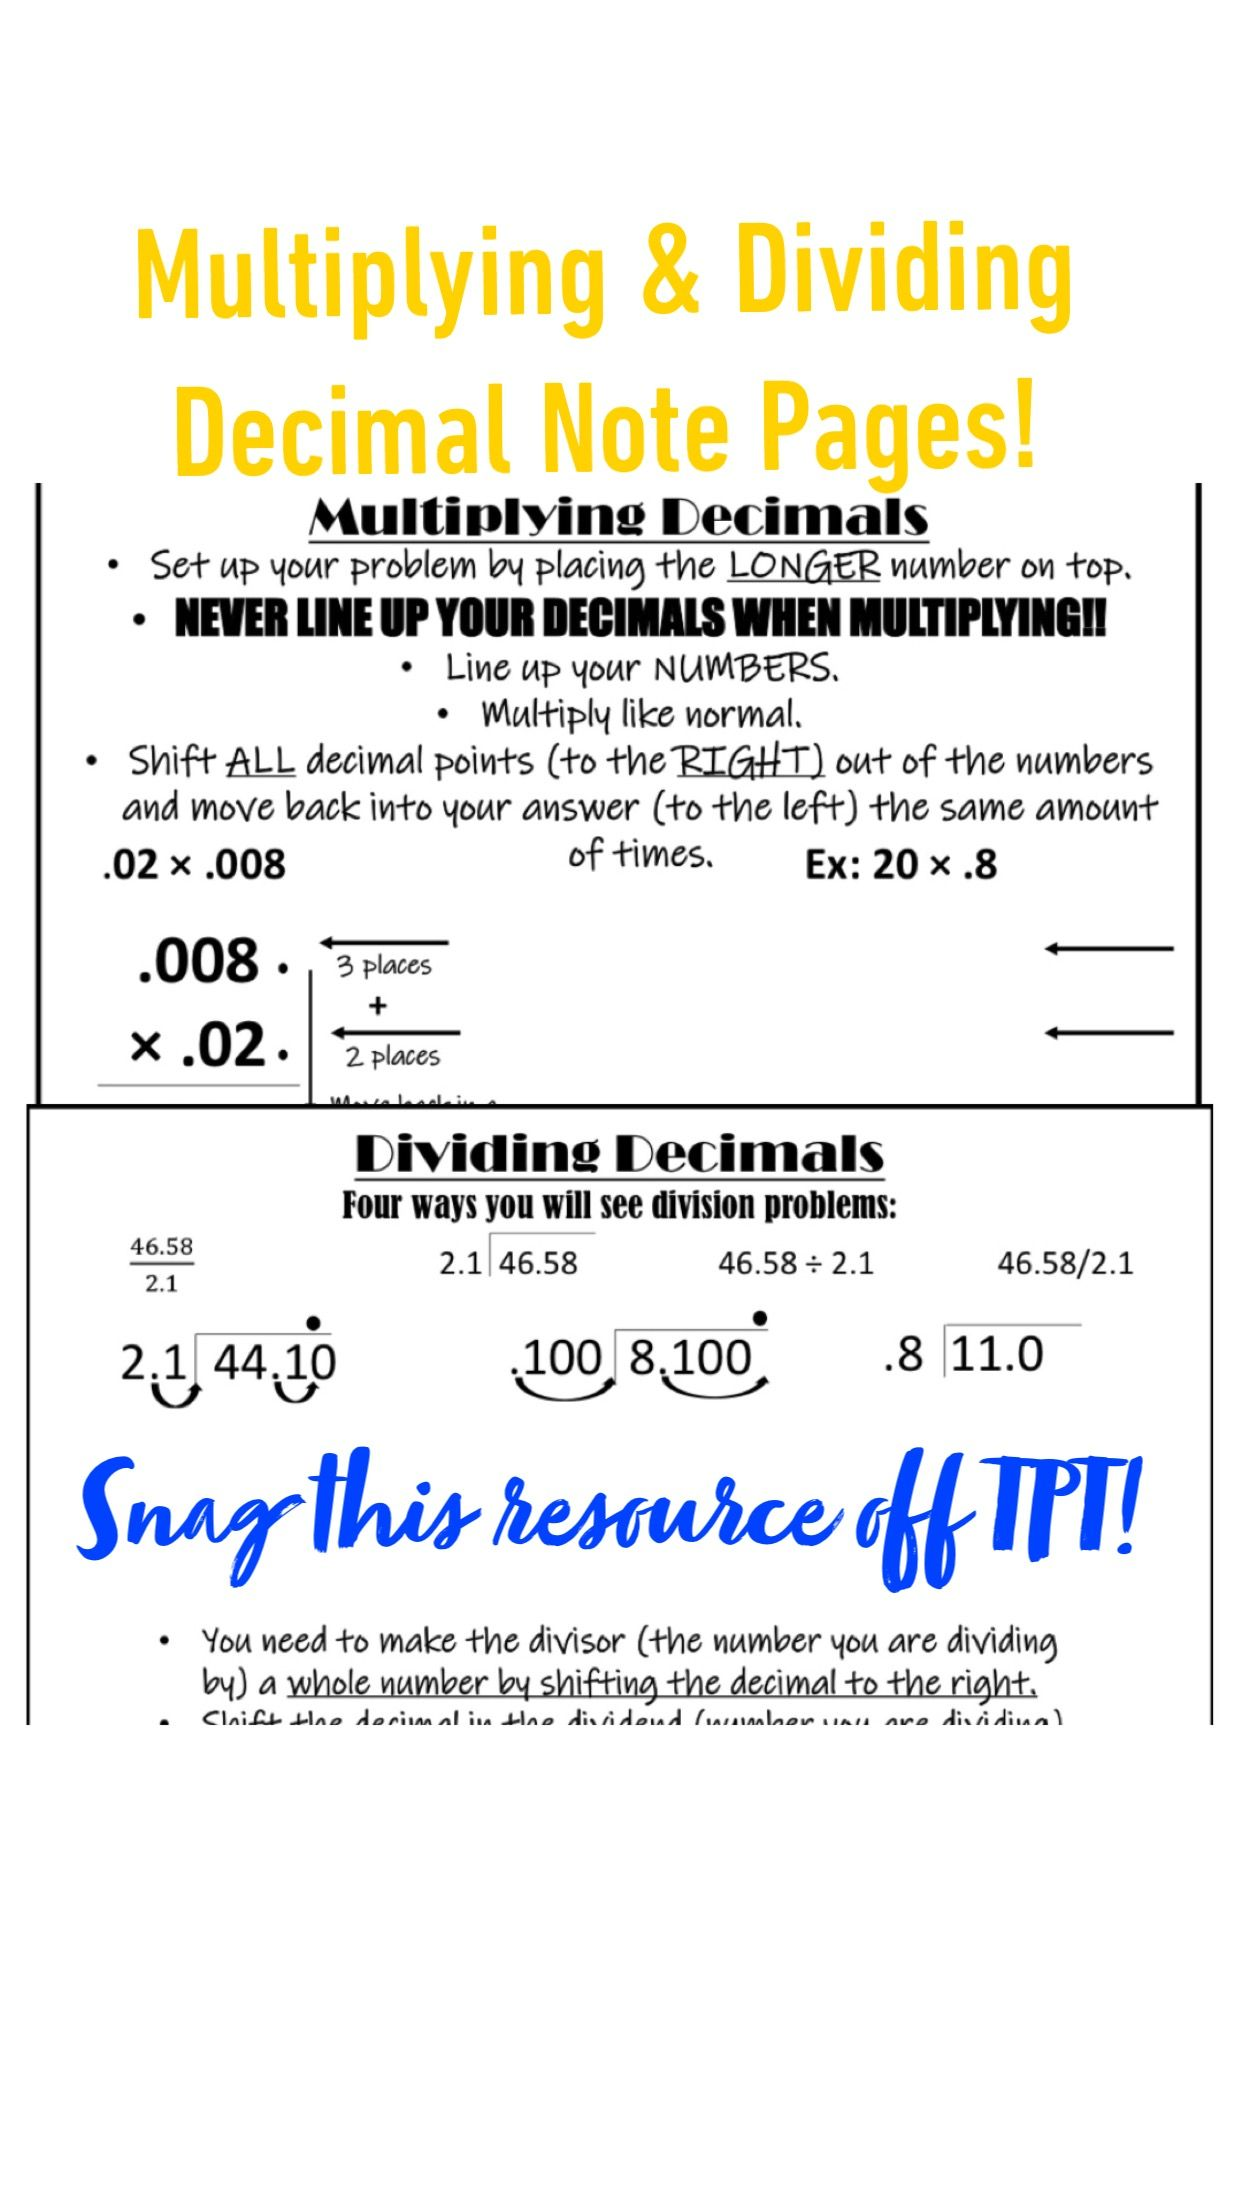 multiplying & dividing decimals note pages with examples on the back